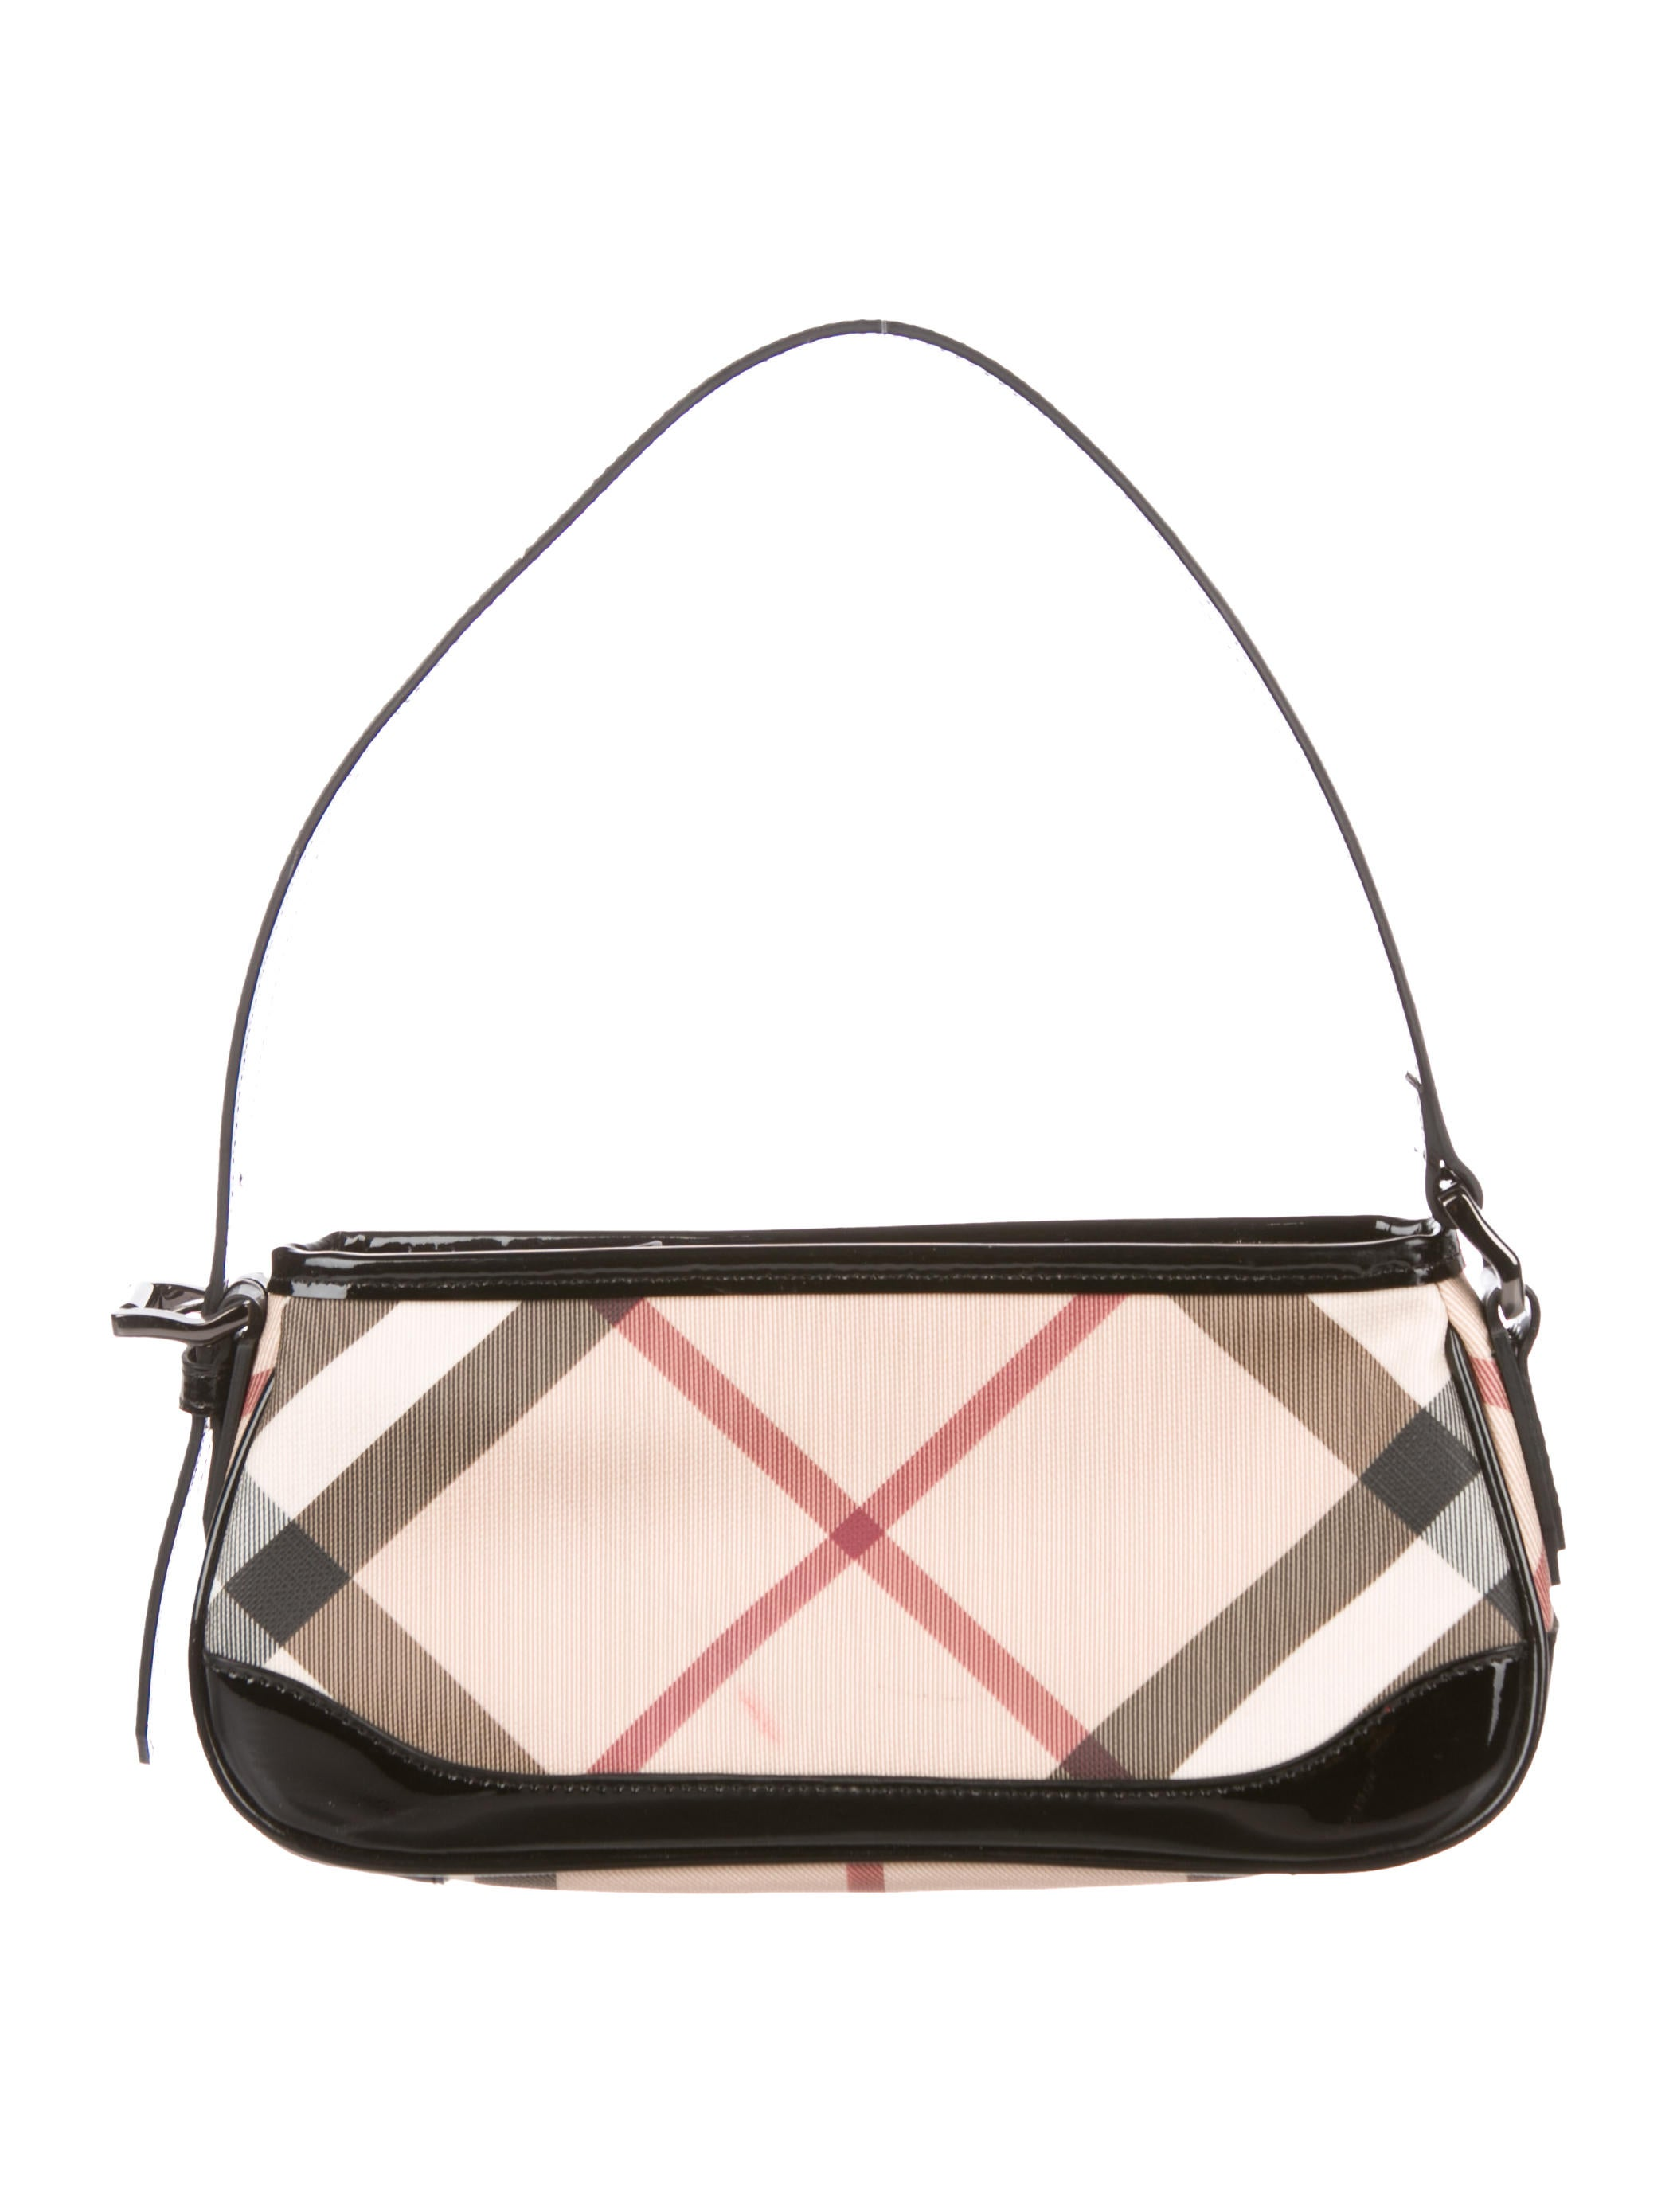 Nova Check Handle Bag by Burberry